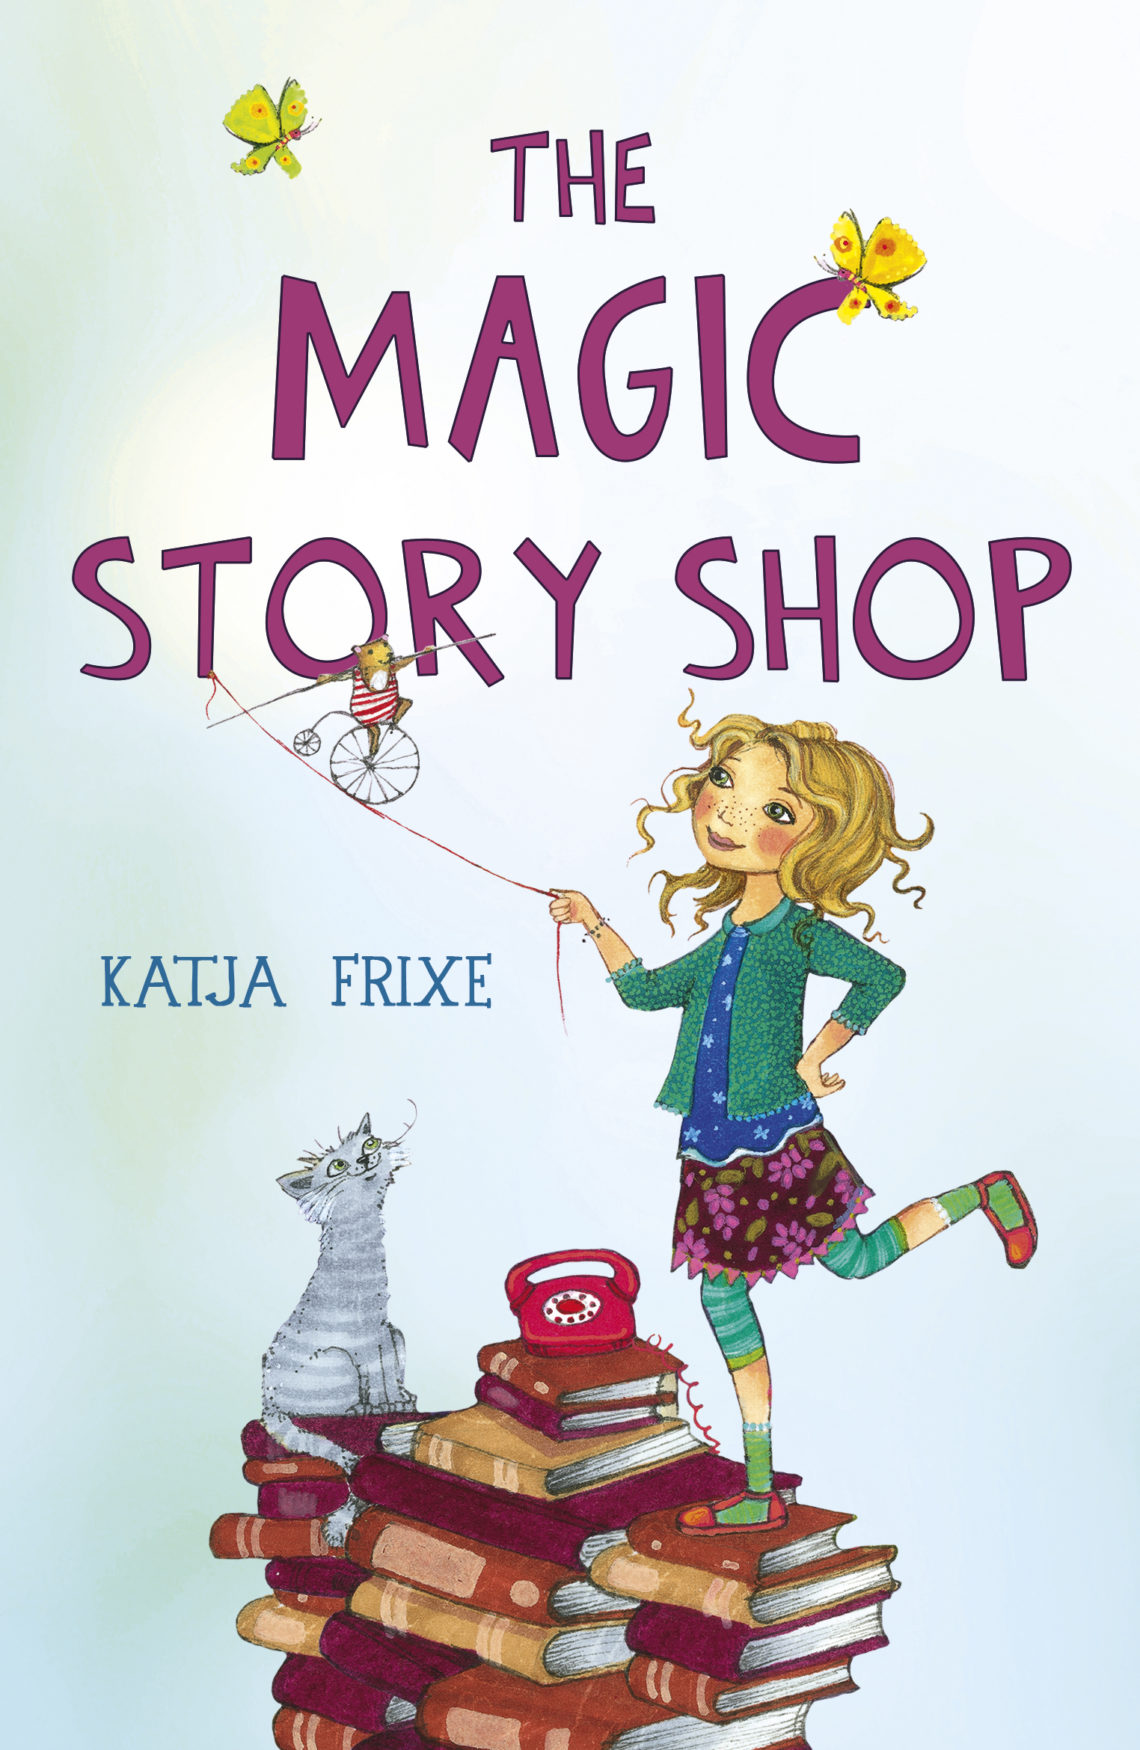 My Translation Of Katja Frixes The Magic Story Shop Is Now Up On Rock Boat Website Its Out In October 2019 So Im Afraid Youll Have To Wait A